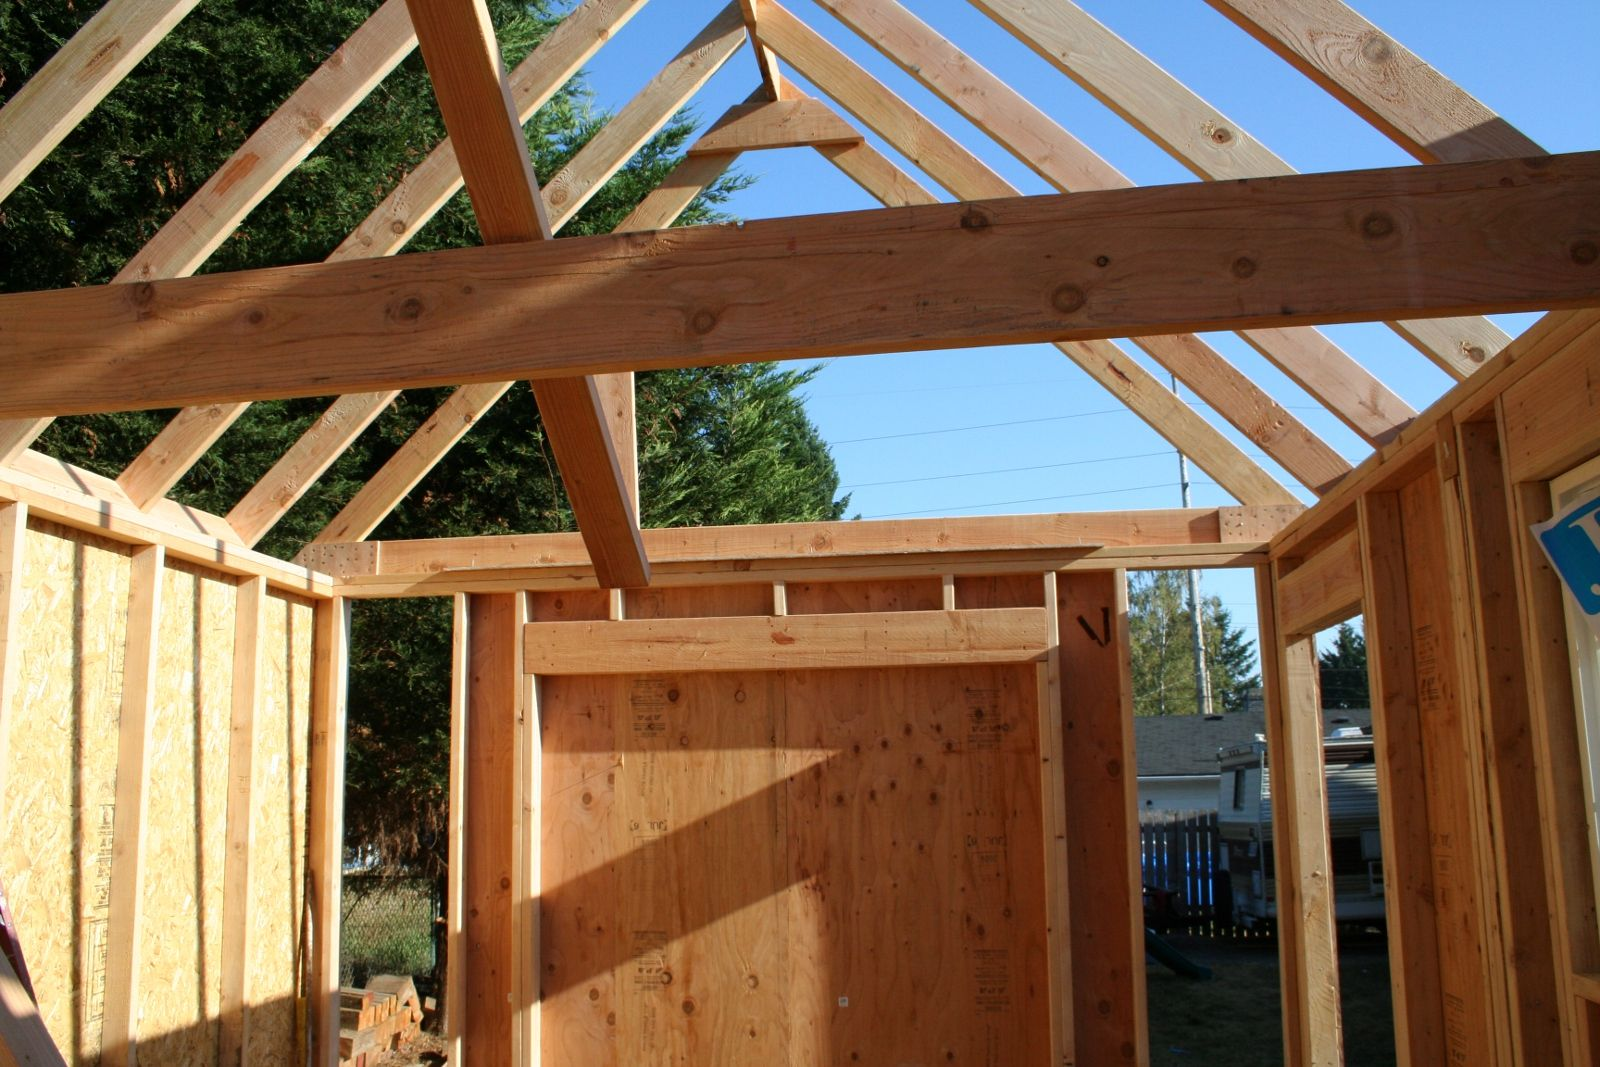 storage shed projects or garden shed make great storage buildings for your tools we can also build a custom playhouse for your children - Garden Sheds Vancouver Island